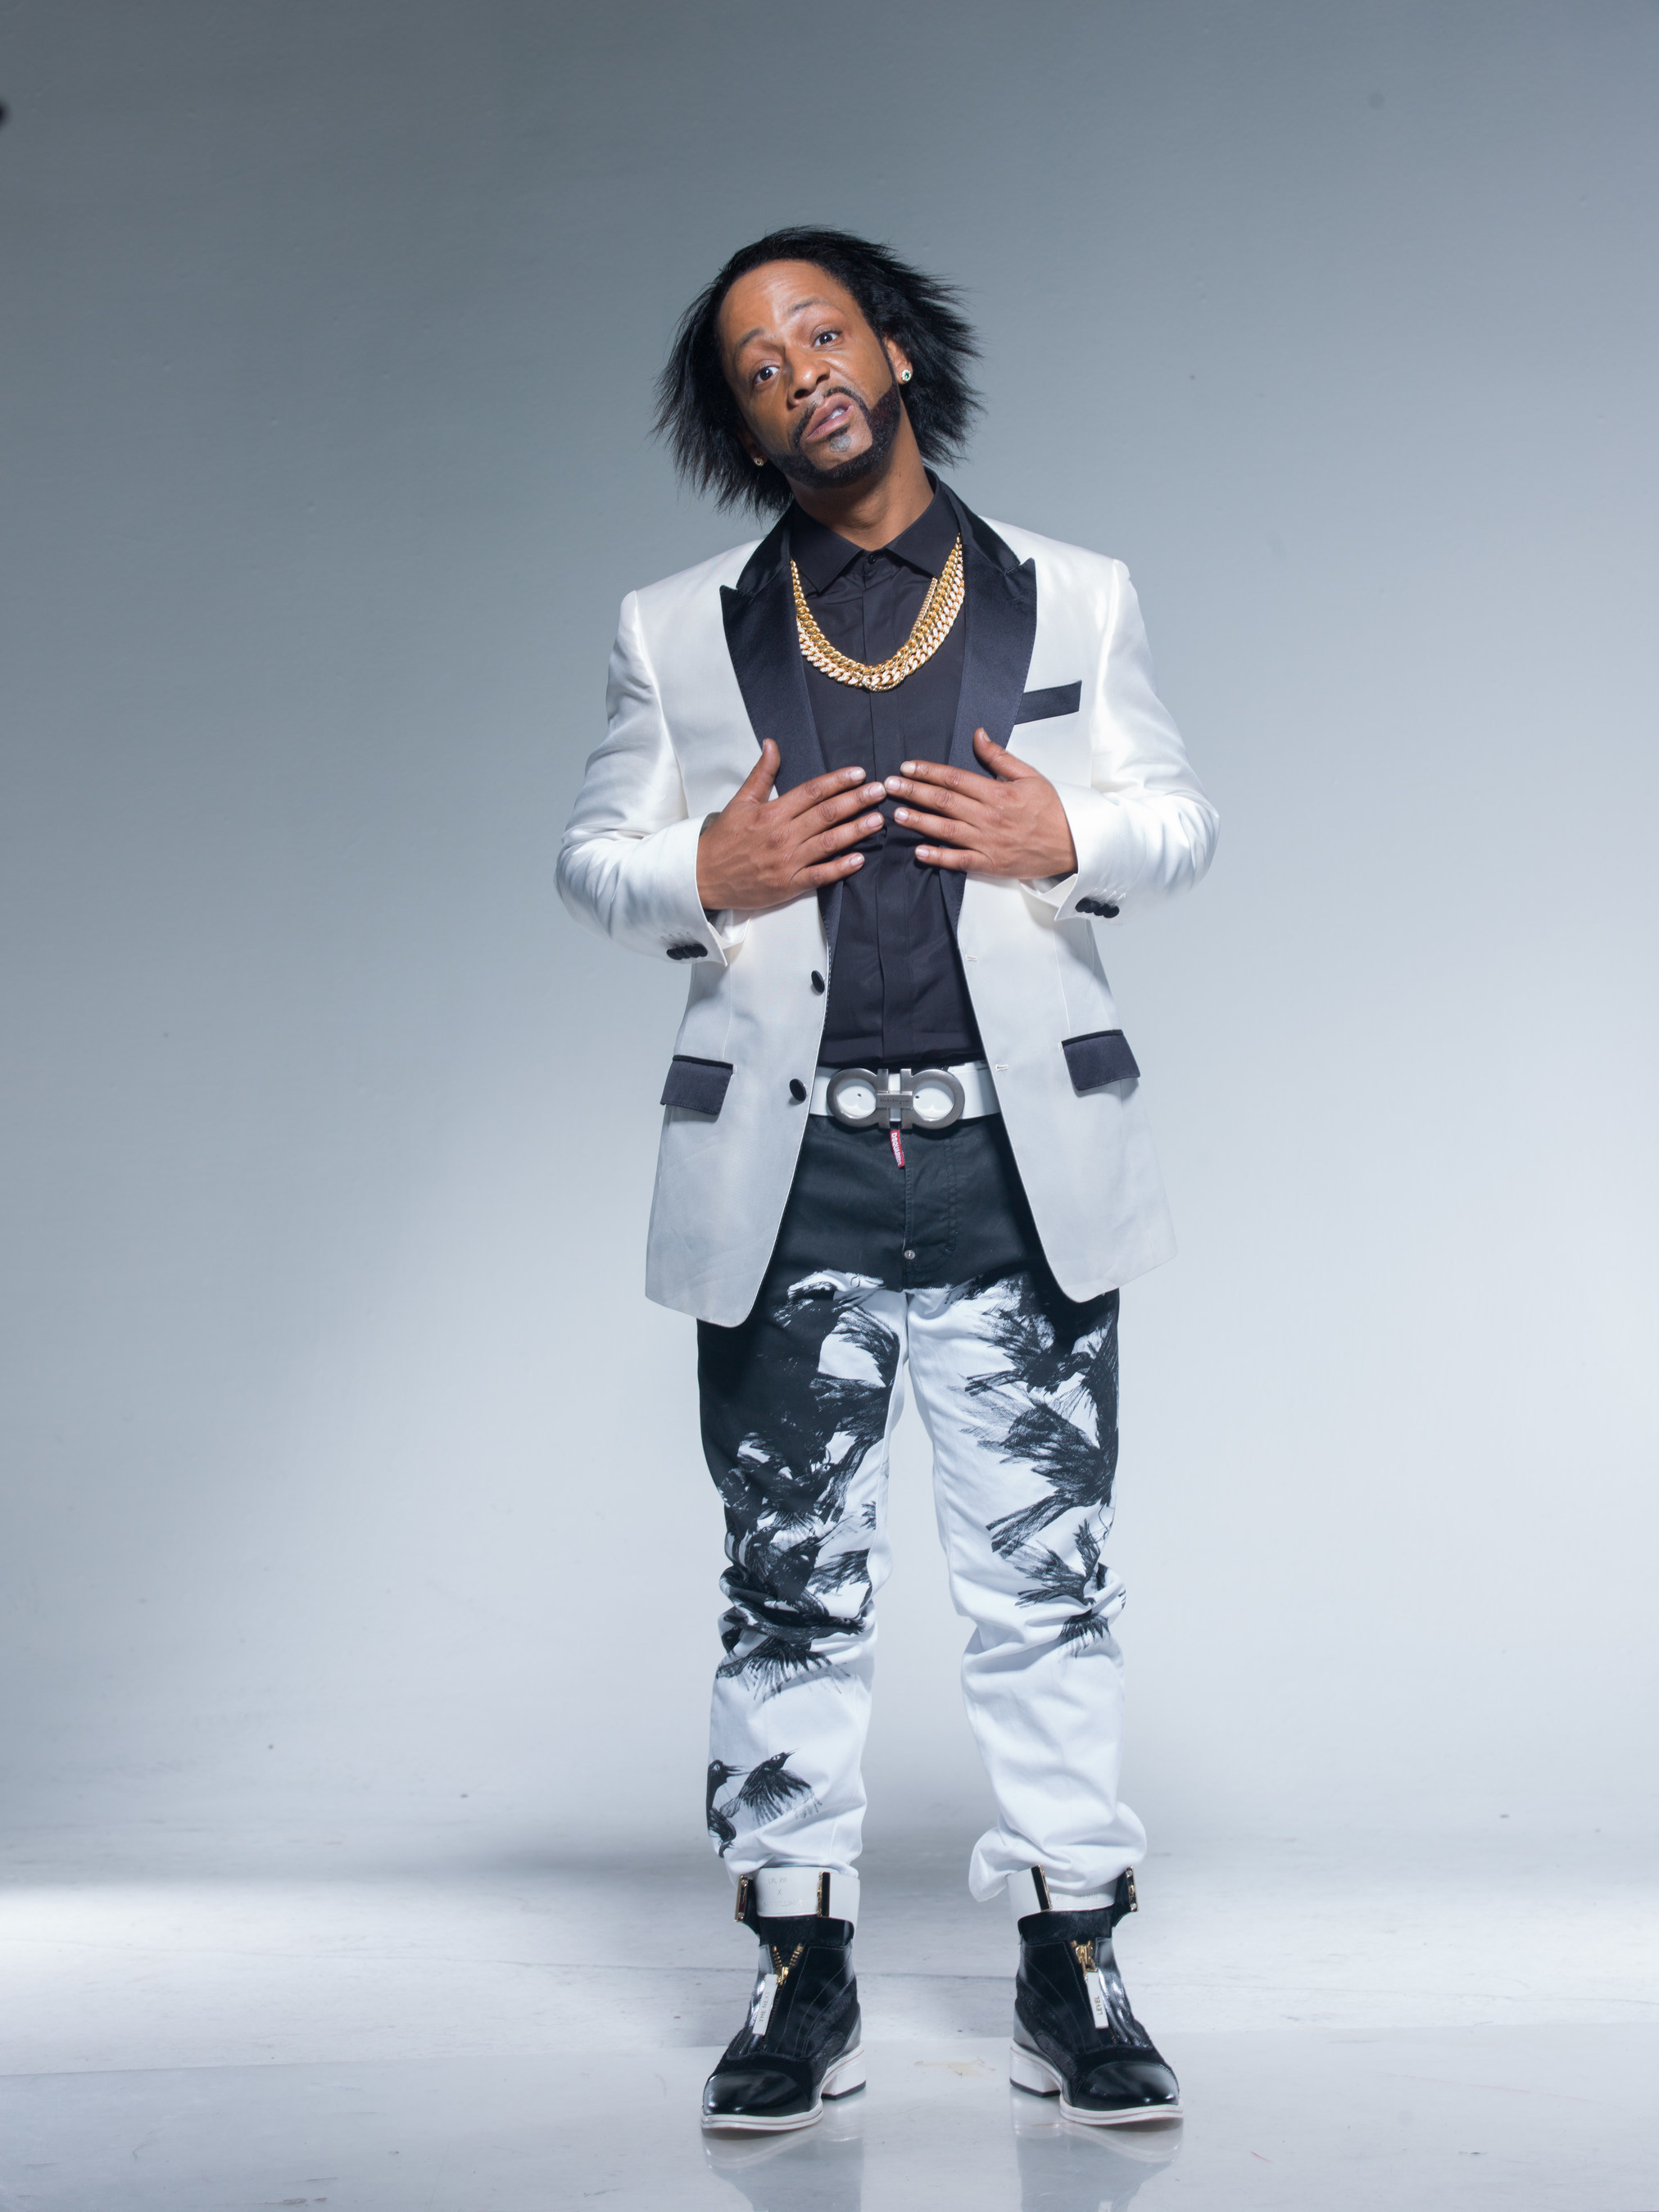 Katt Williams Announces Conspiracy Theory National Tour